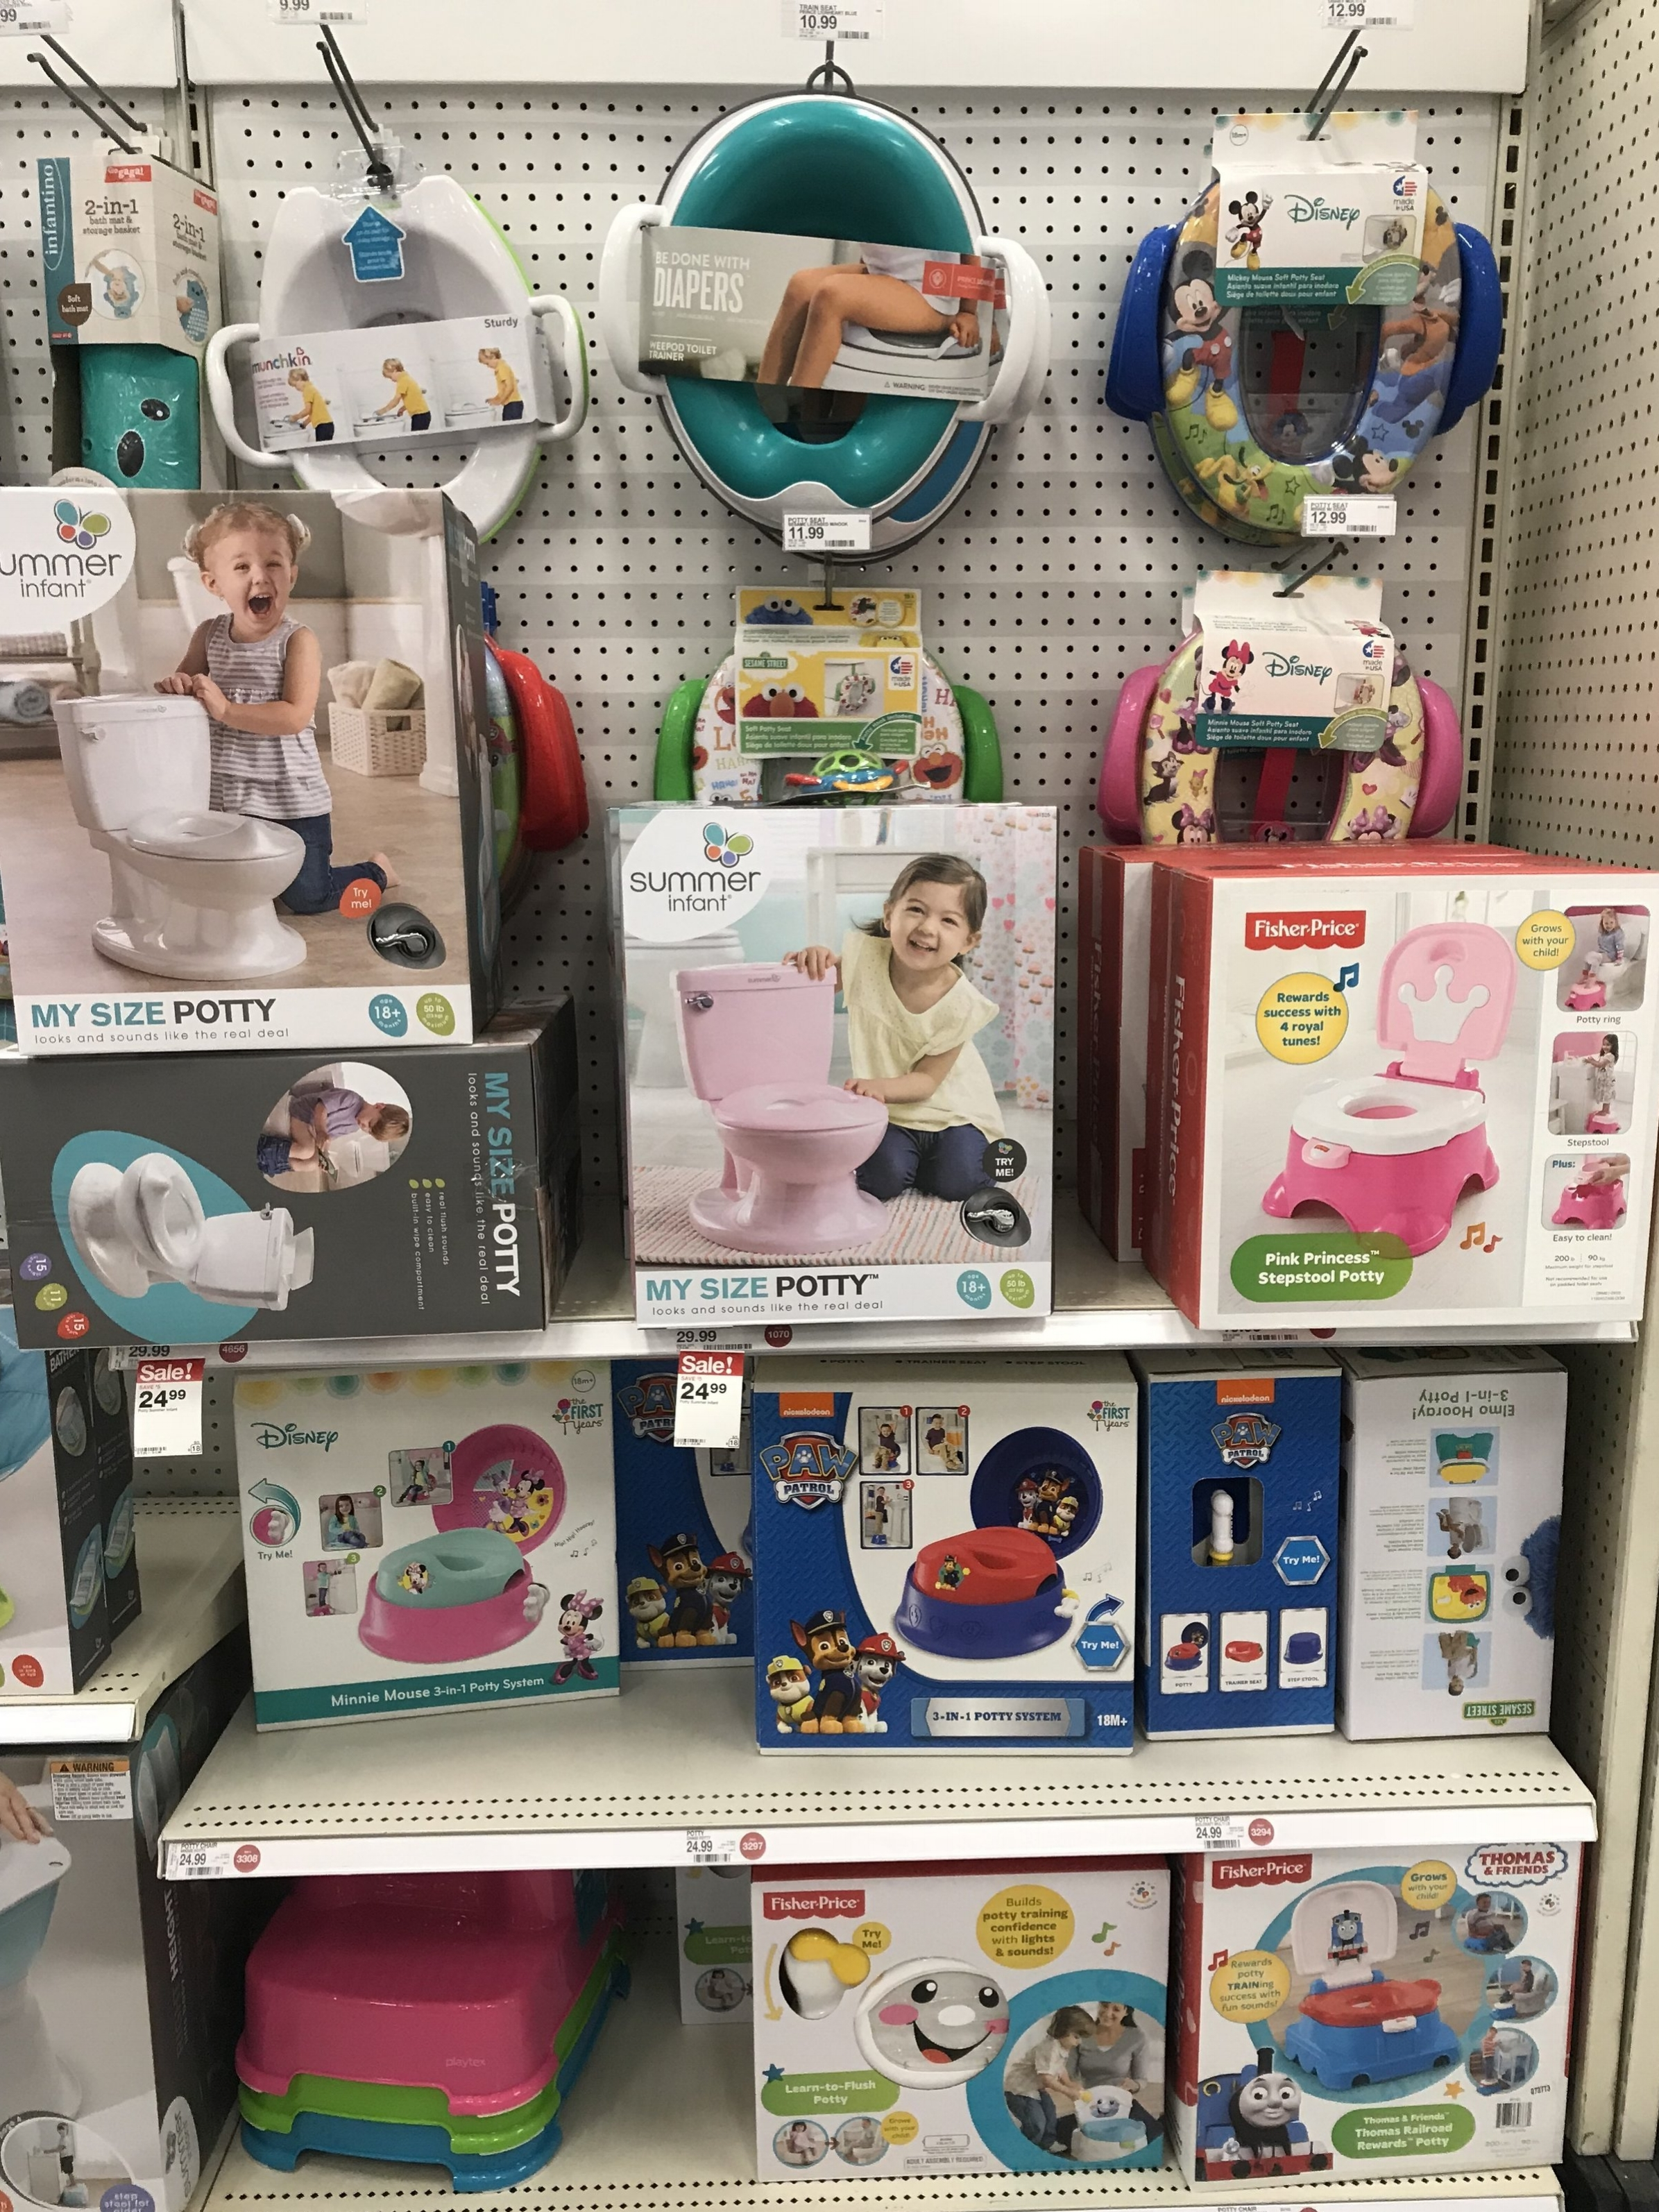 There are plenty of potty options to choose from! If you have multiple levels and bathrooms in your house I suggest more than one potty or seat cover.